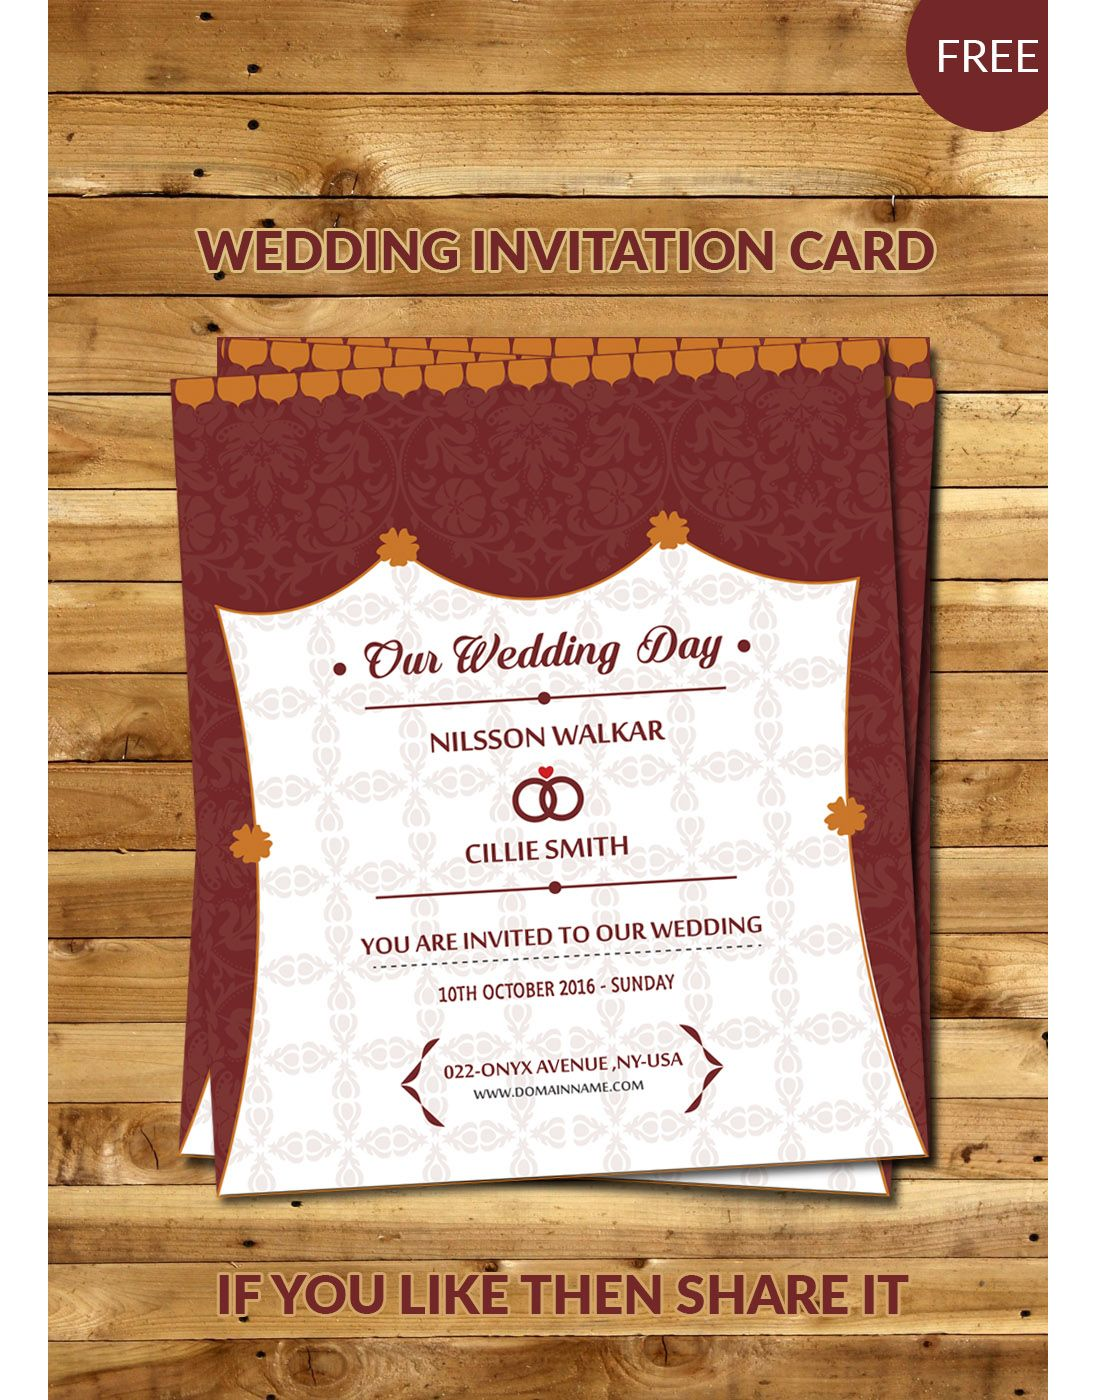 wedding invitation card templates | Kankotri Vector Template ...